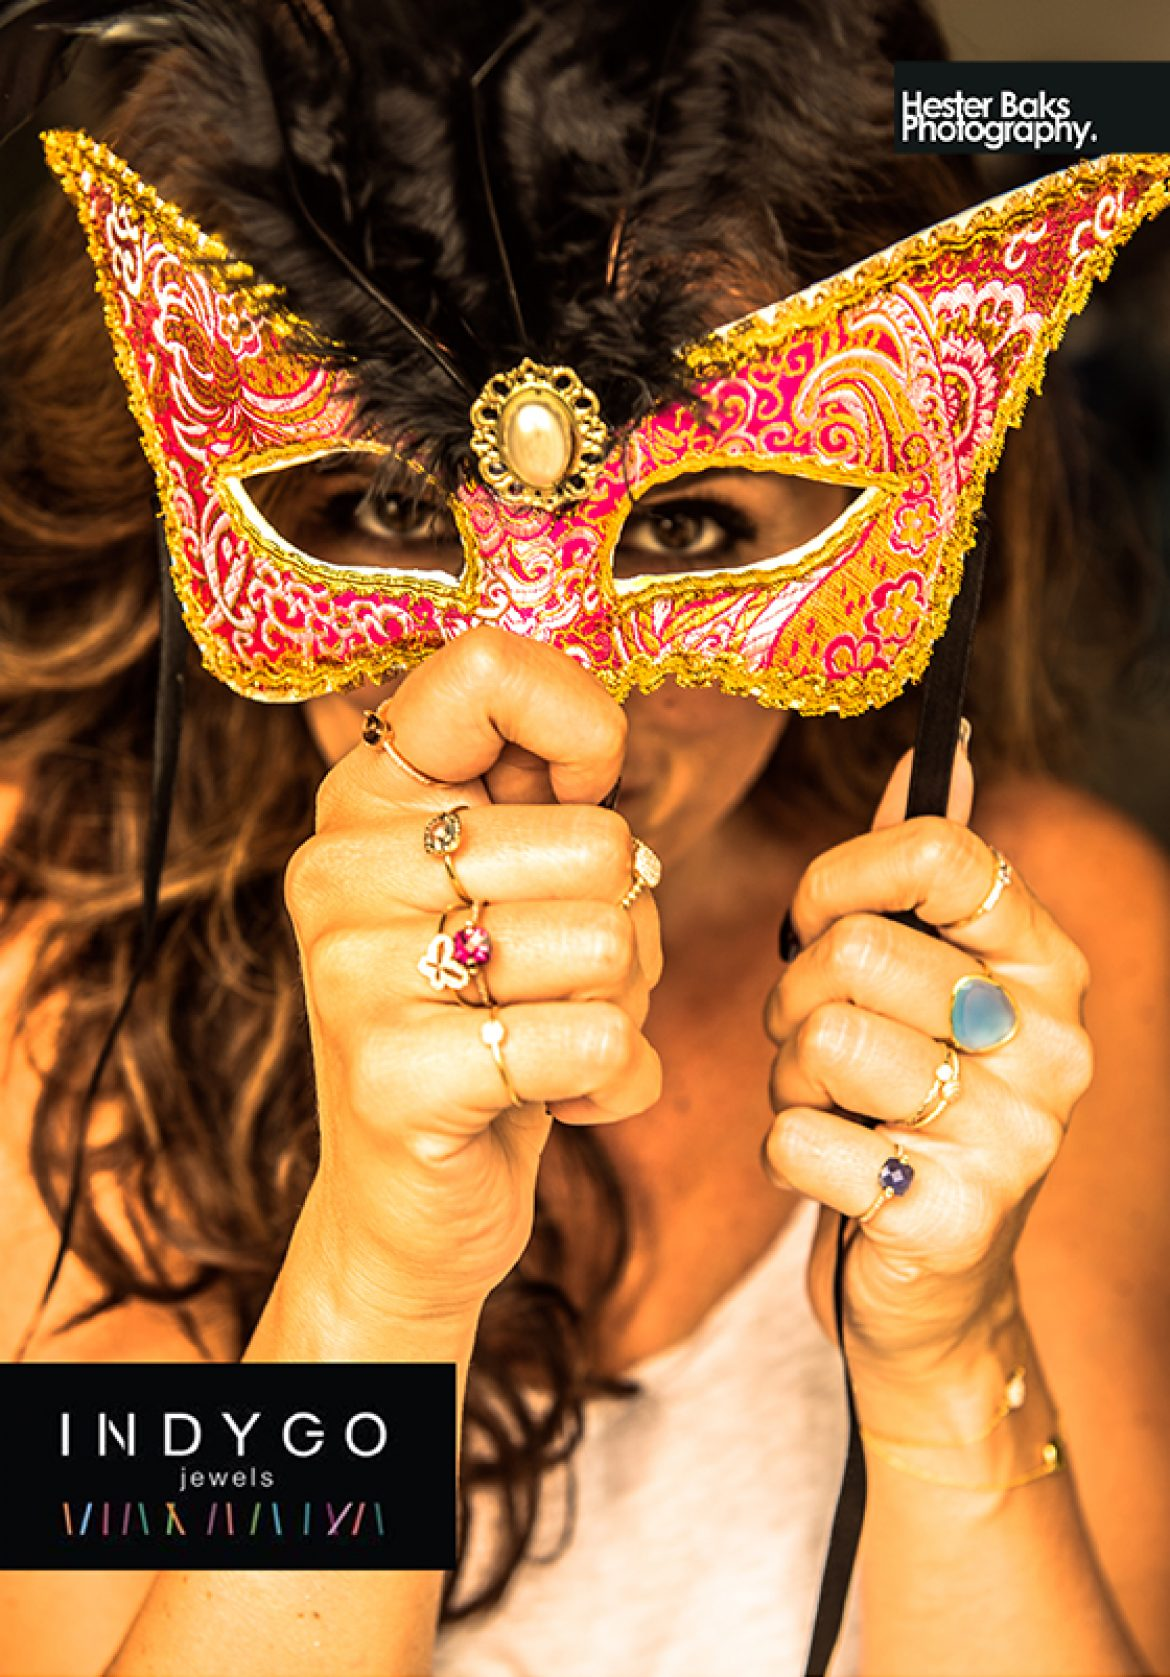 #IndygoJewels #Brochure #cover #HesterBaksPhotography